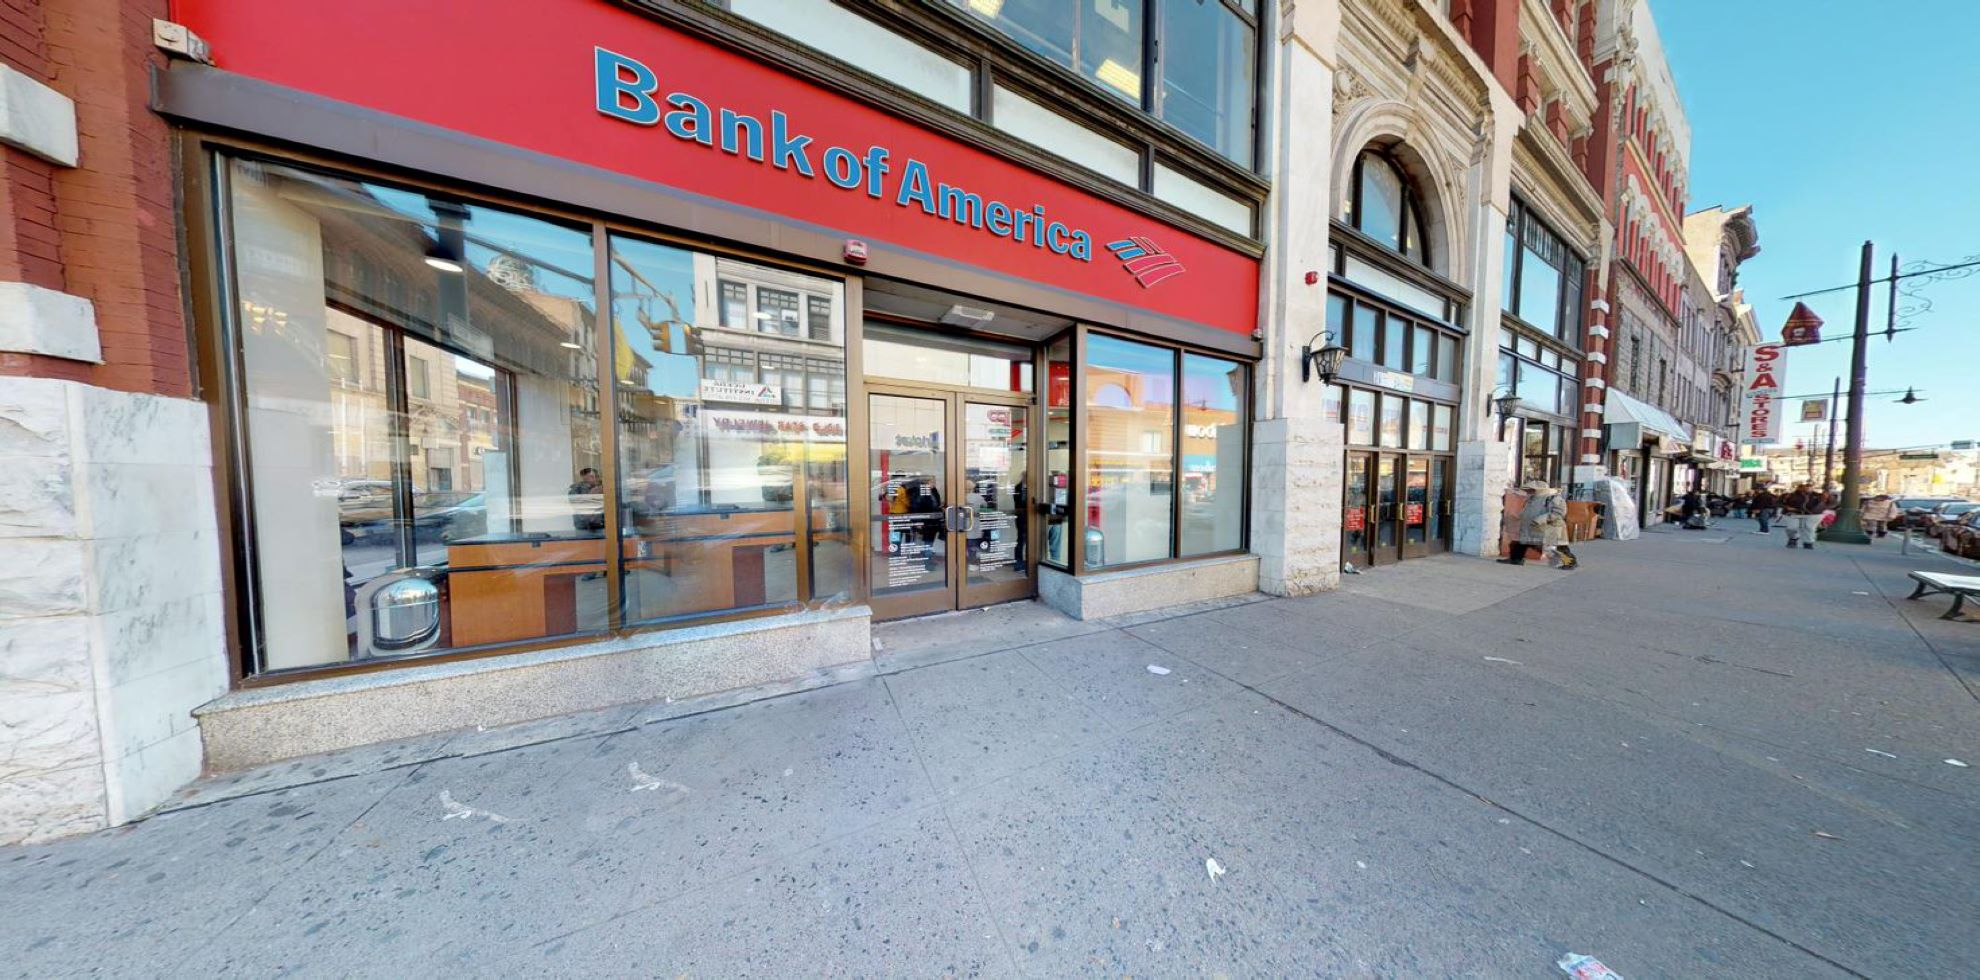 Bank of America financial center with walk-up ATM   190 Main St, Paterson, NJ 07505